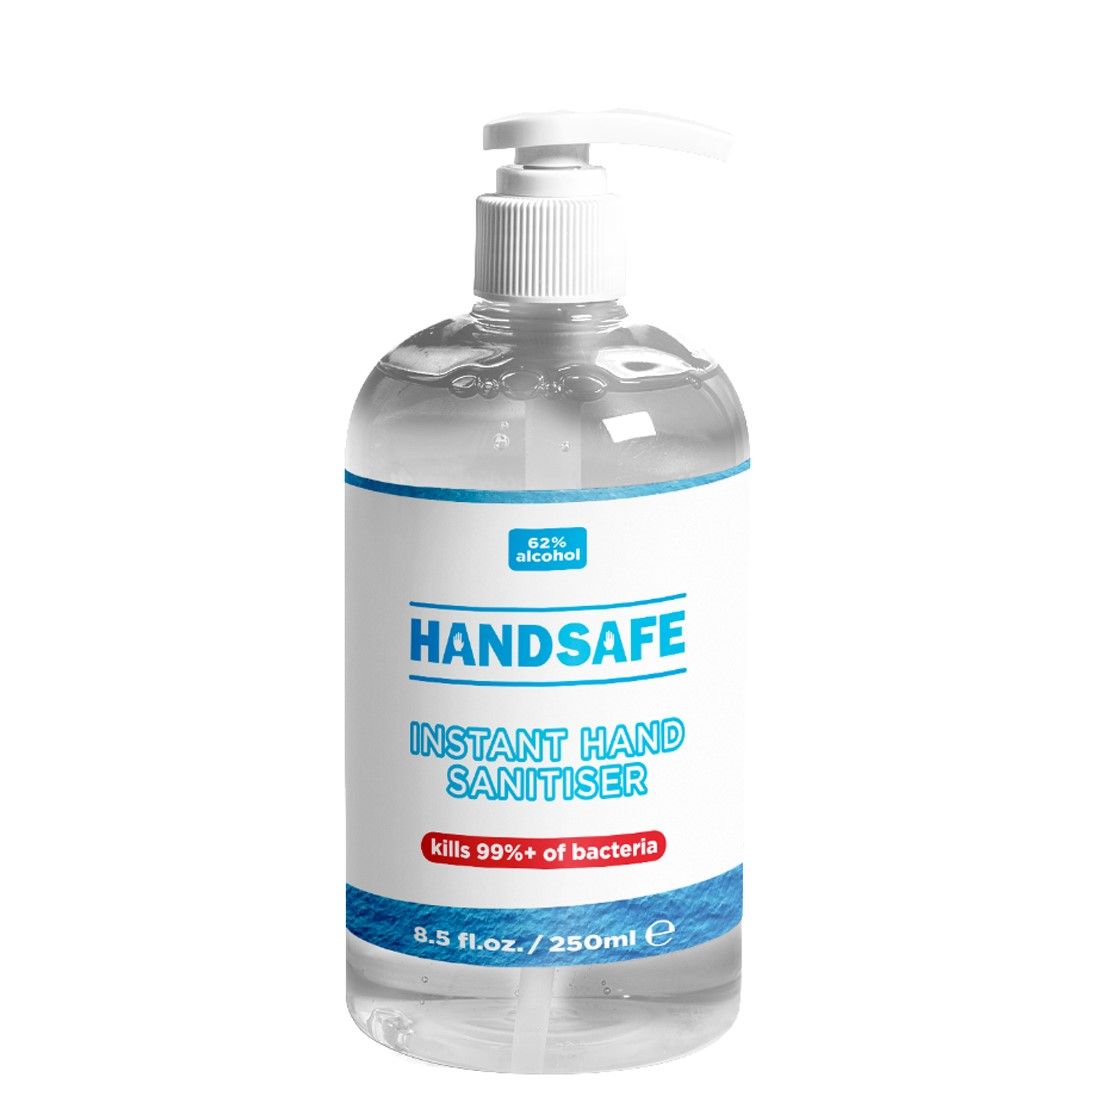 637286076018511494_hand-sanitiser-uk-62pc_250ml_web.jpg